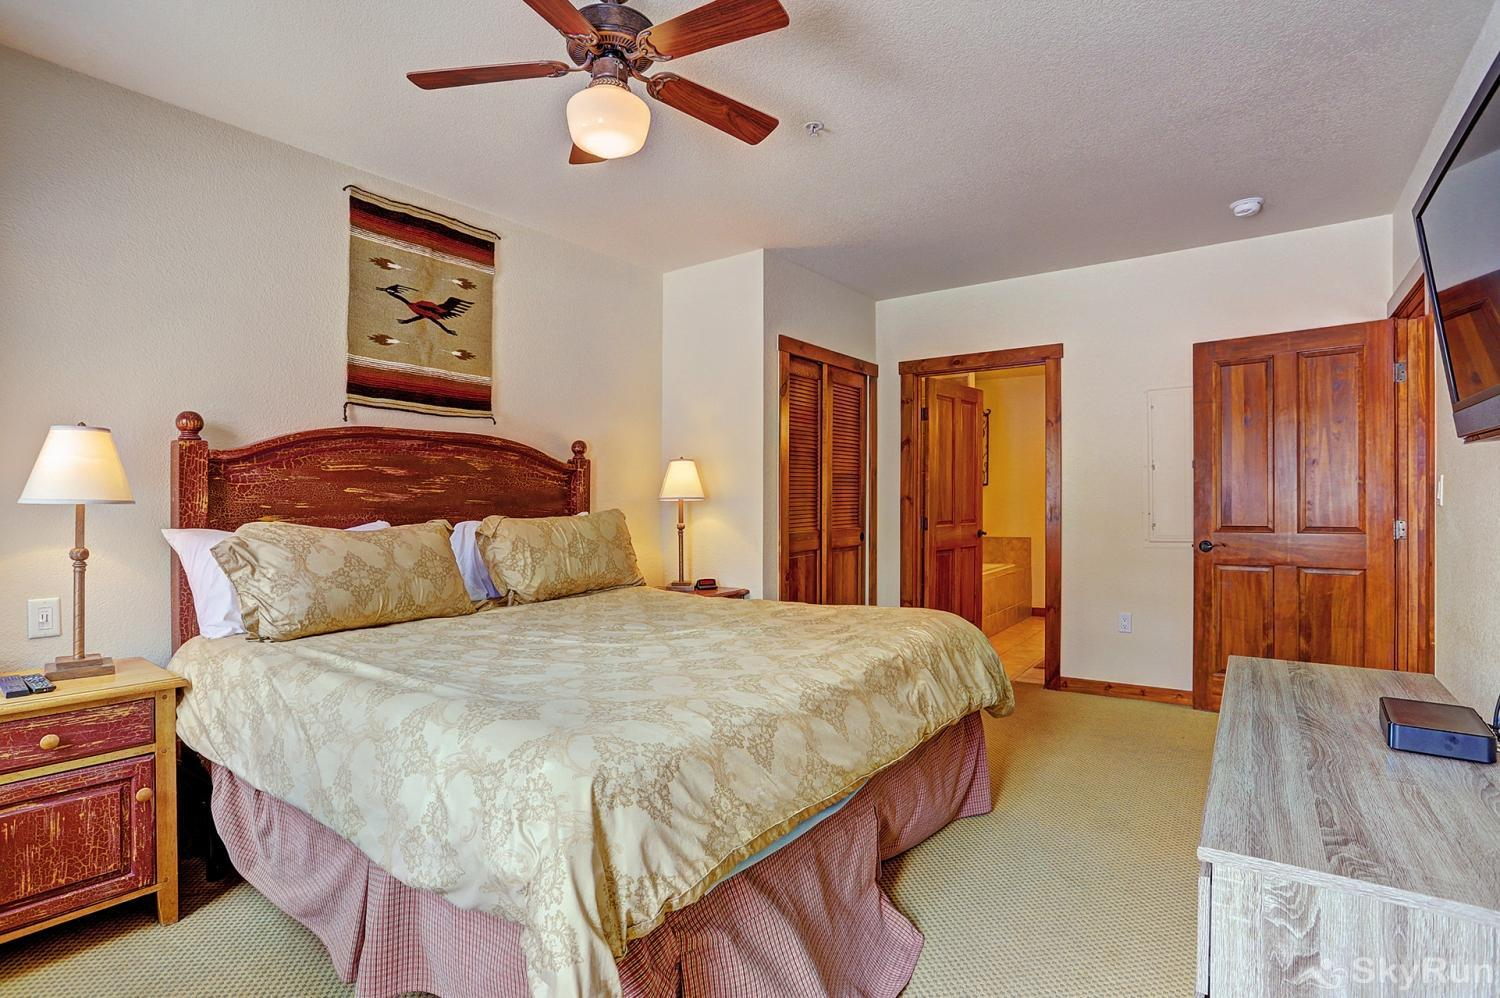 Main Street Station 2203 Spacious king master bedroom with ensuite bath